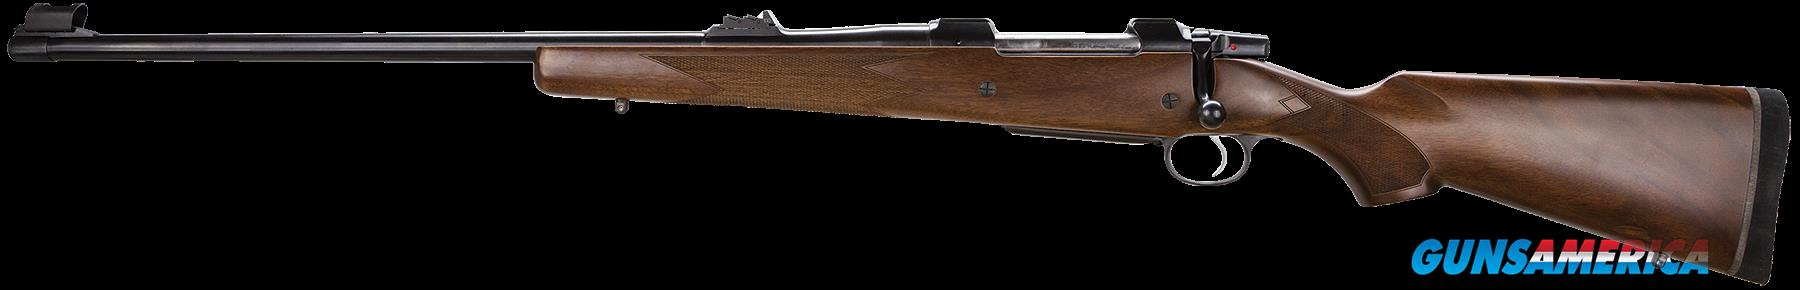 "CZ 04220 CZ 550 Bolt 375 Holland & Holland Magnum 25"" Walnut Blued  Guns > Rifles > C Misc Rifles"